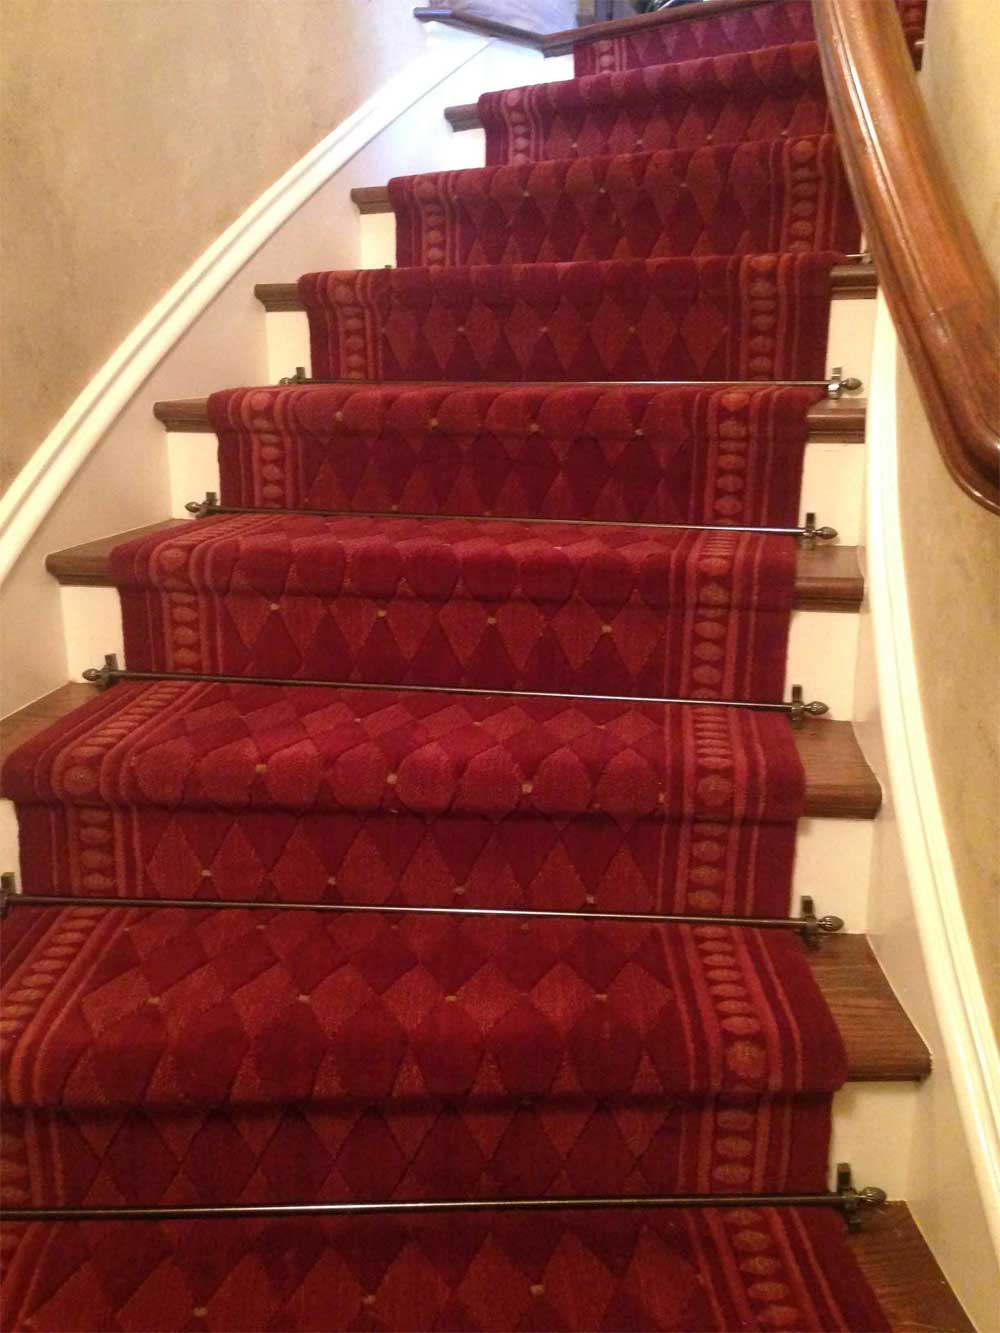 Runner Rugs Stair Runner Installation Is Done Be